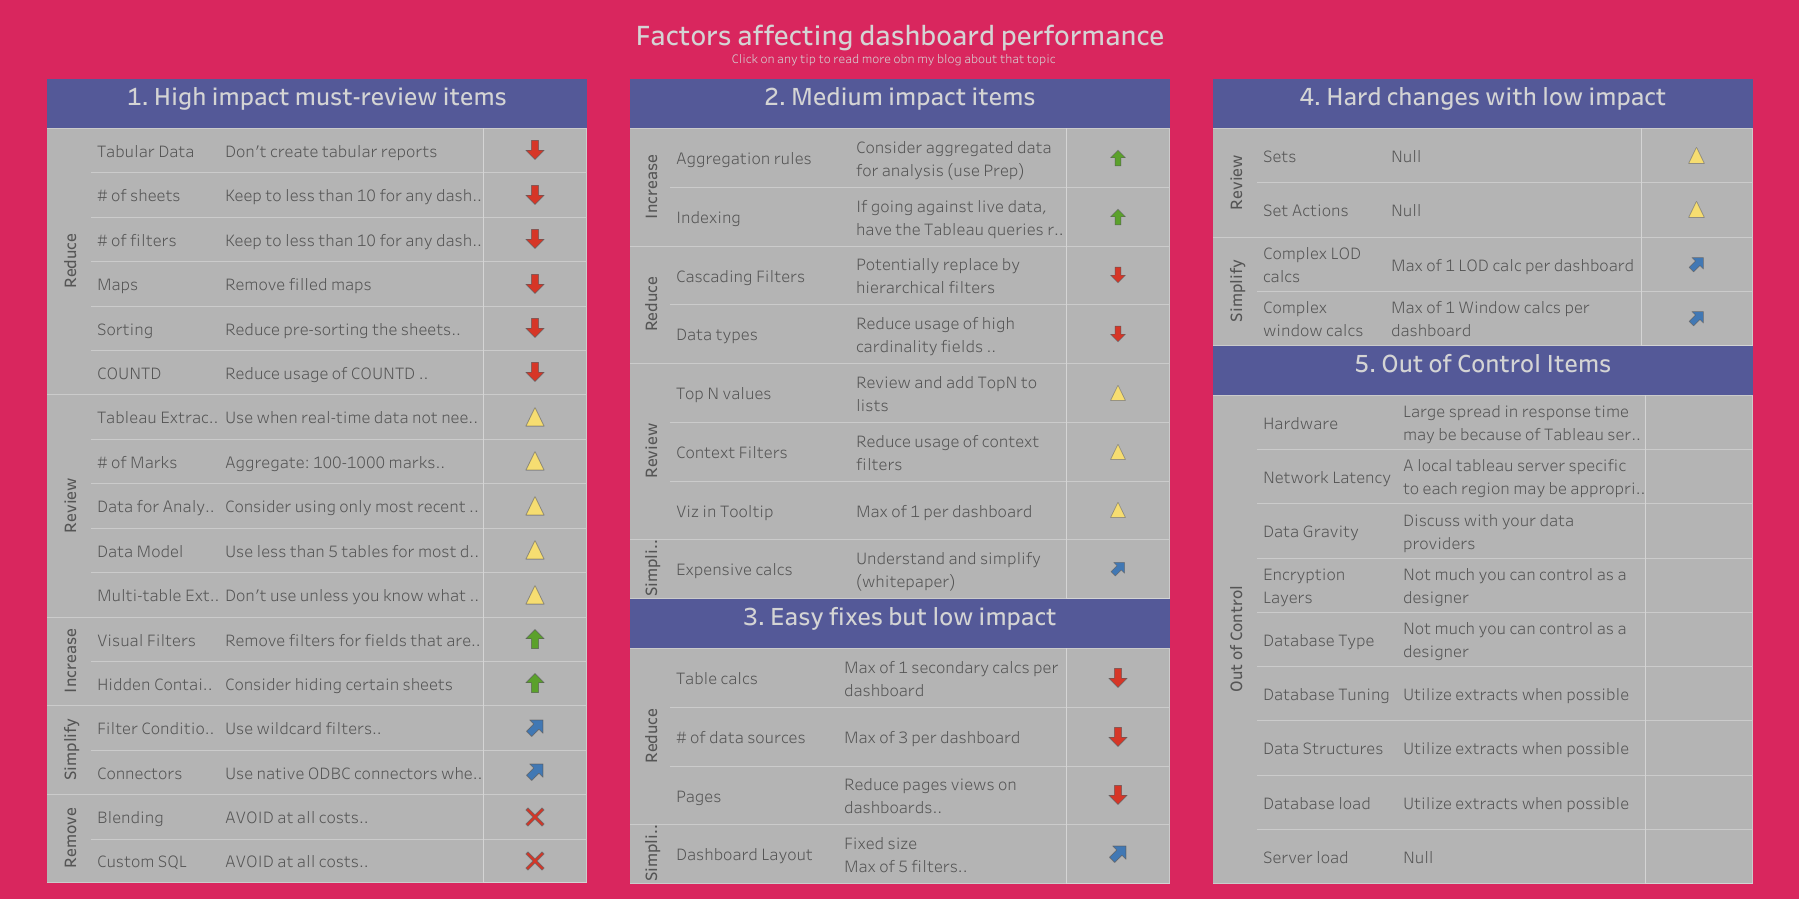 Factors affecting dashboard performance